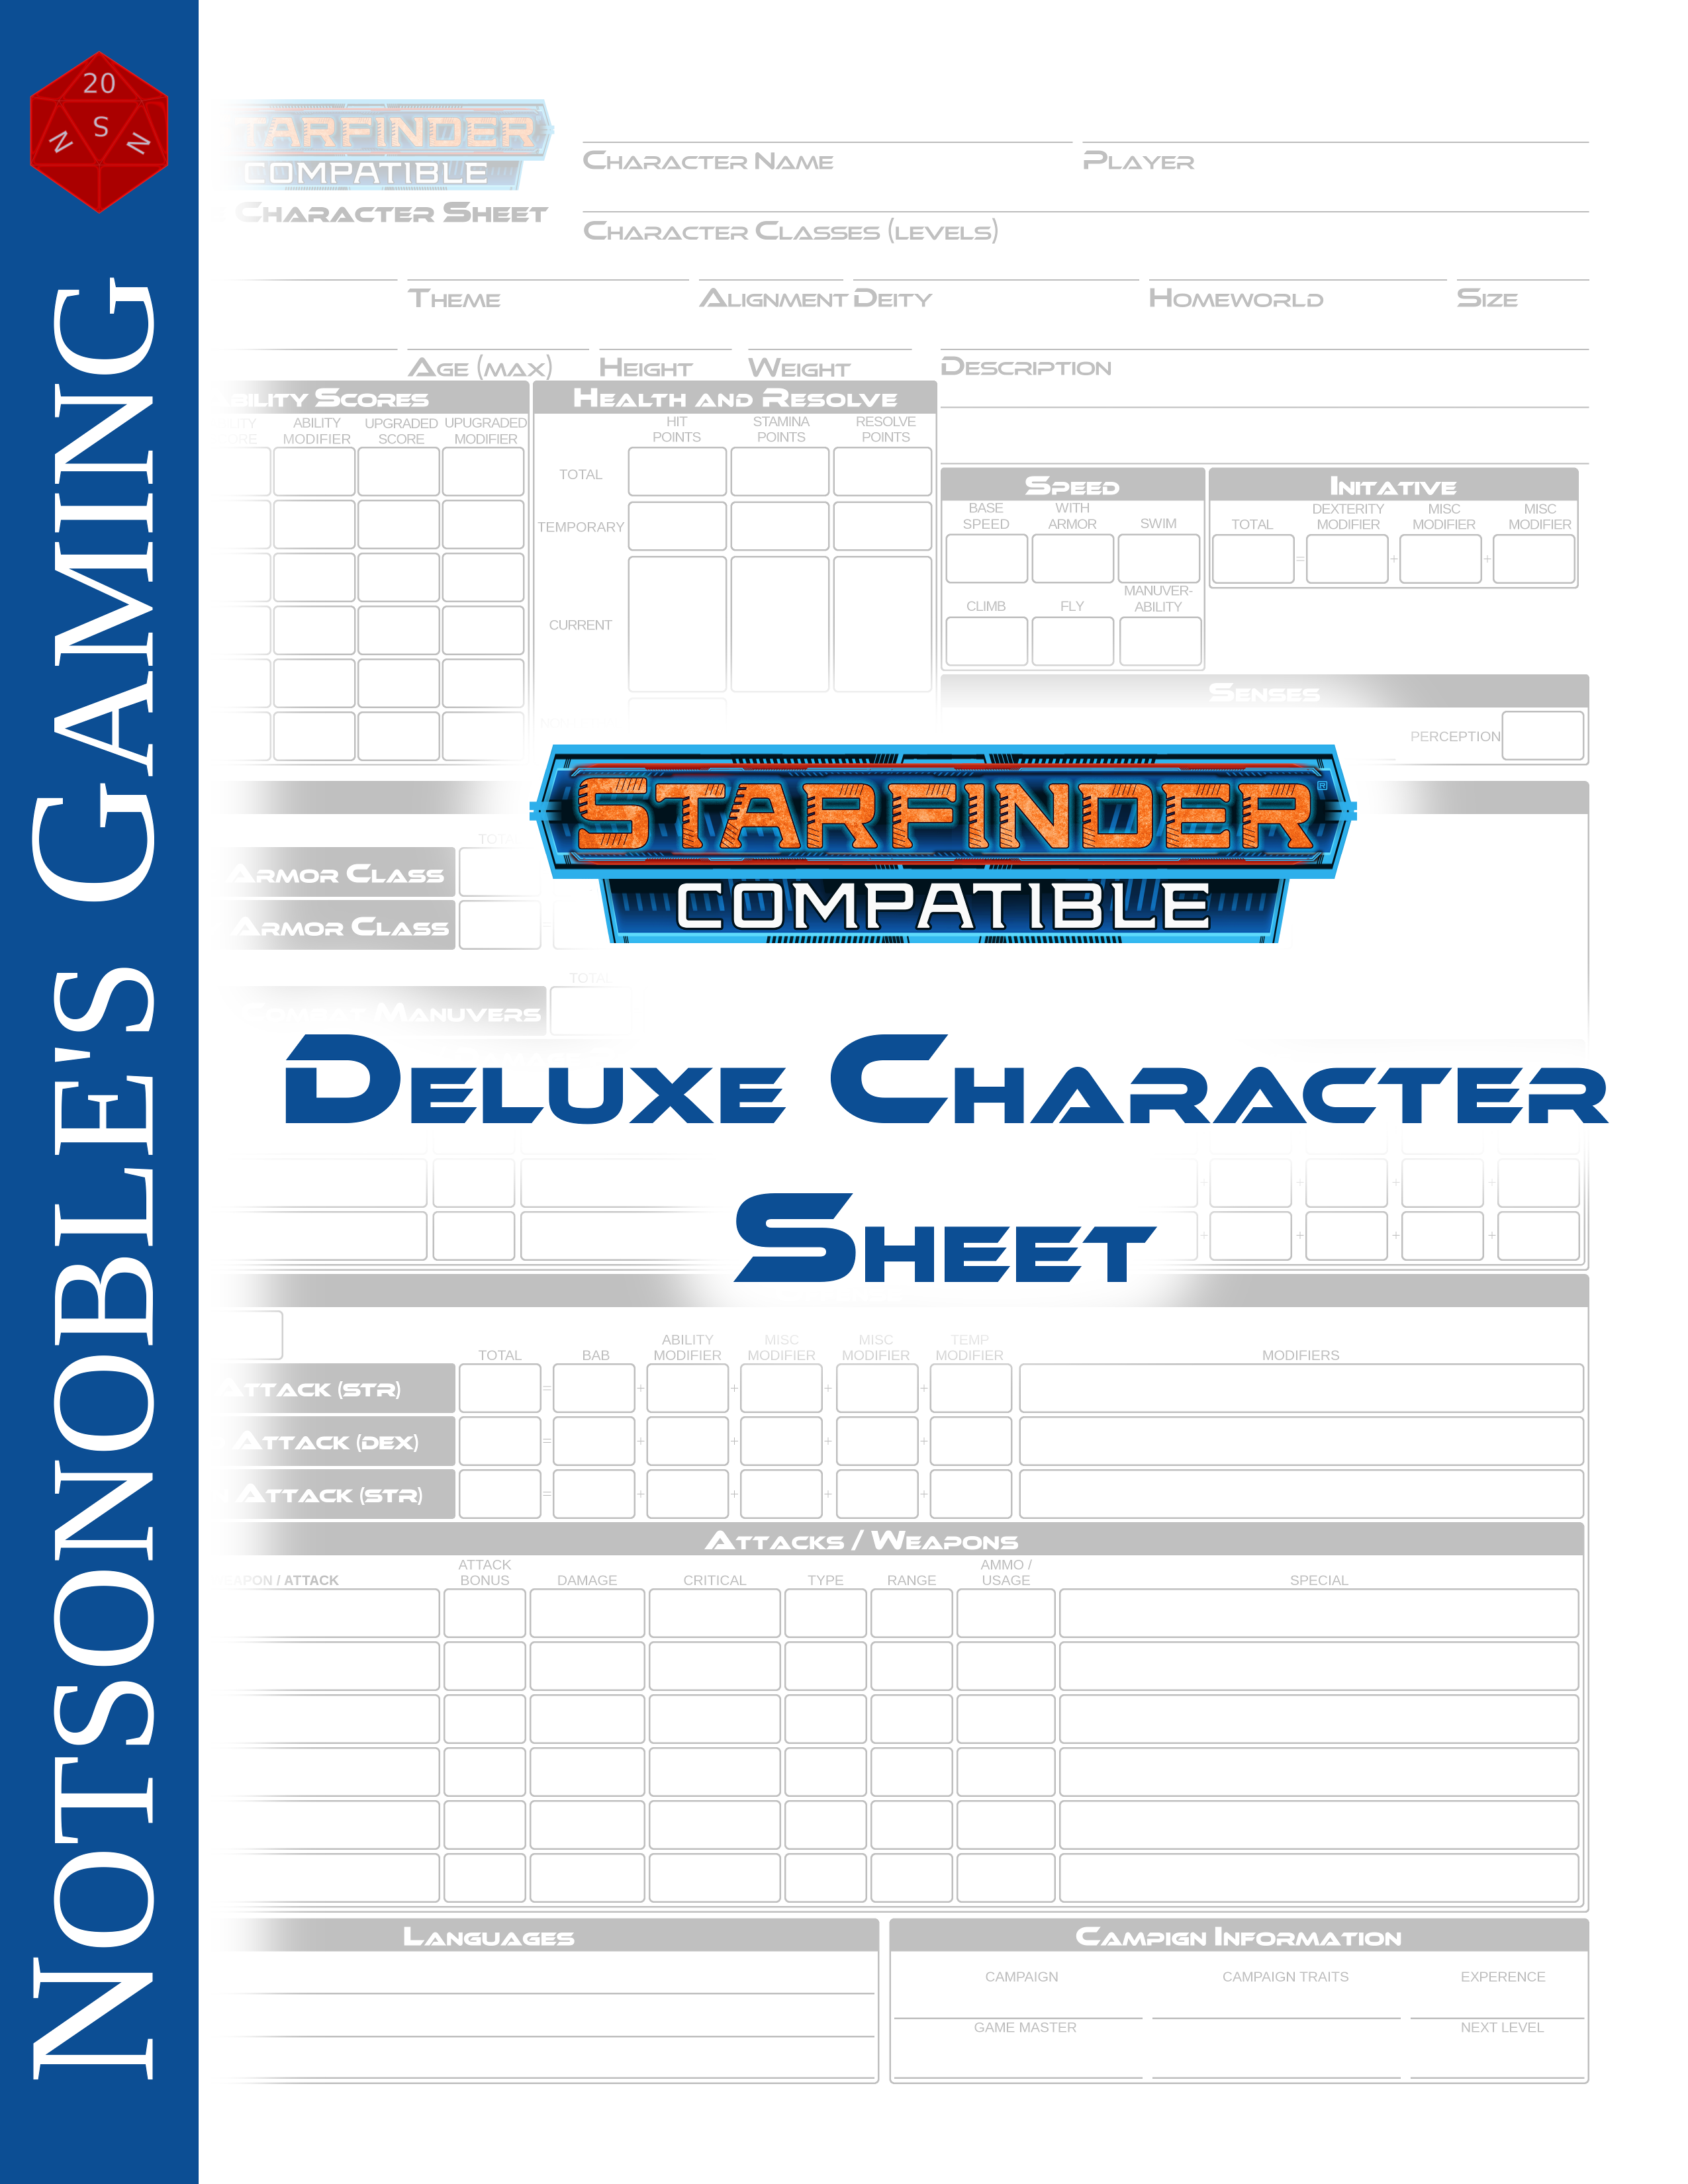 Character information sheet - Starfinder Deluxe Character Sheet